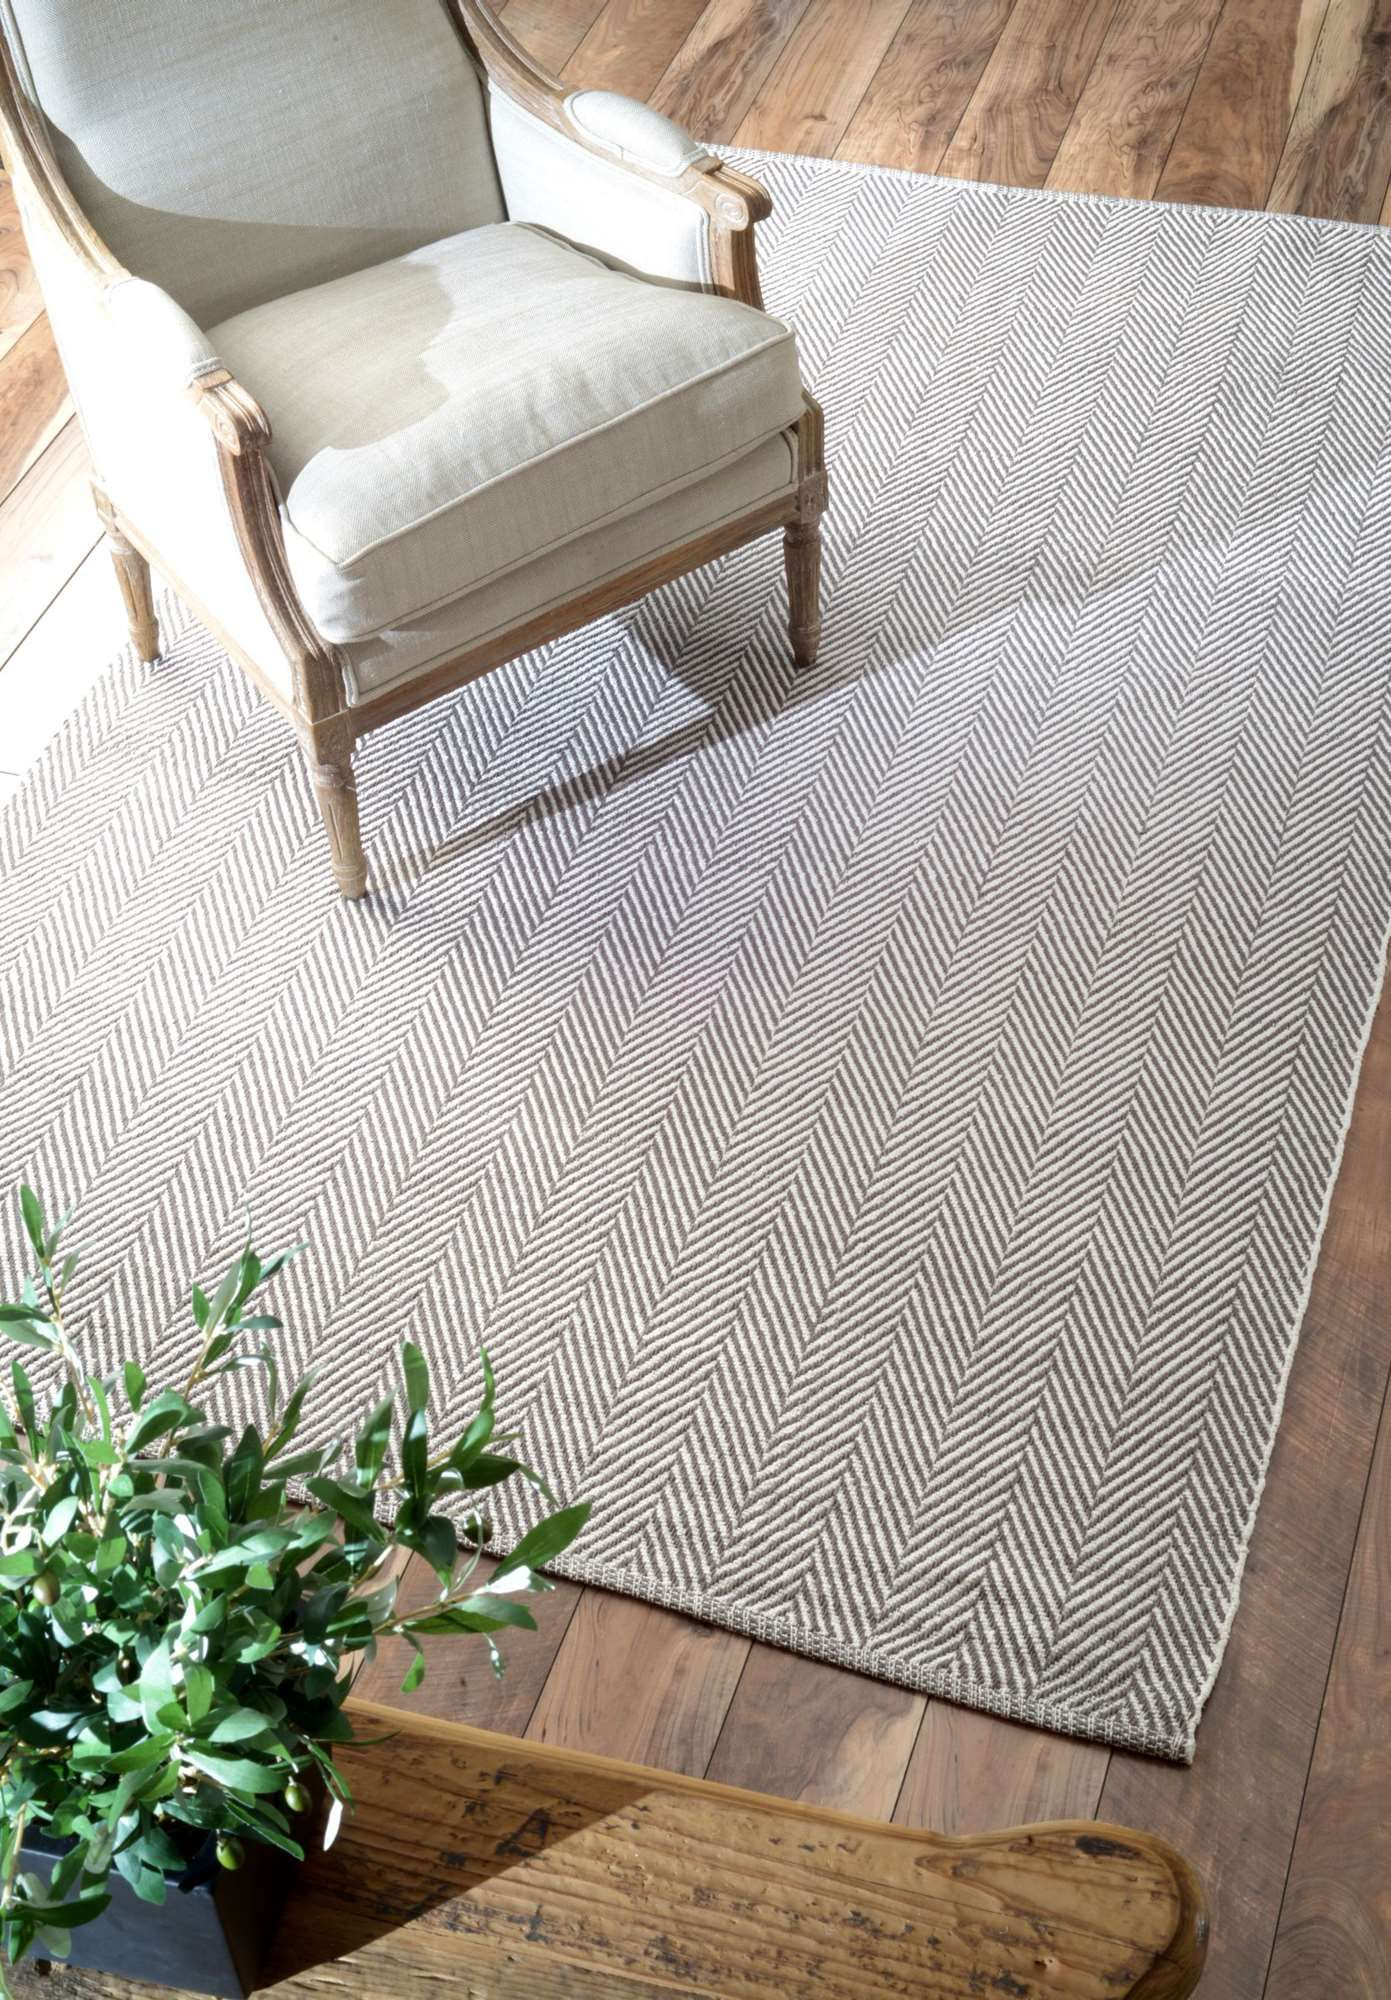 DINING ROOM Rugs USA   Area Rugs In Many Styles Including Contemporary,  Braided, Outdoor And Flokati Shag Rugs.Buy Rugs At Americau0027s Home  Decorating ...